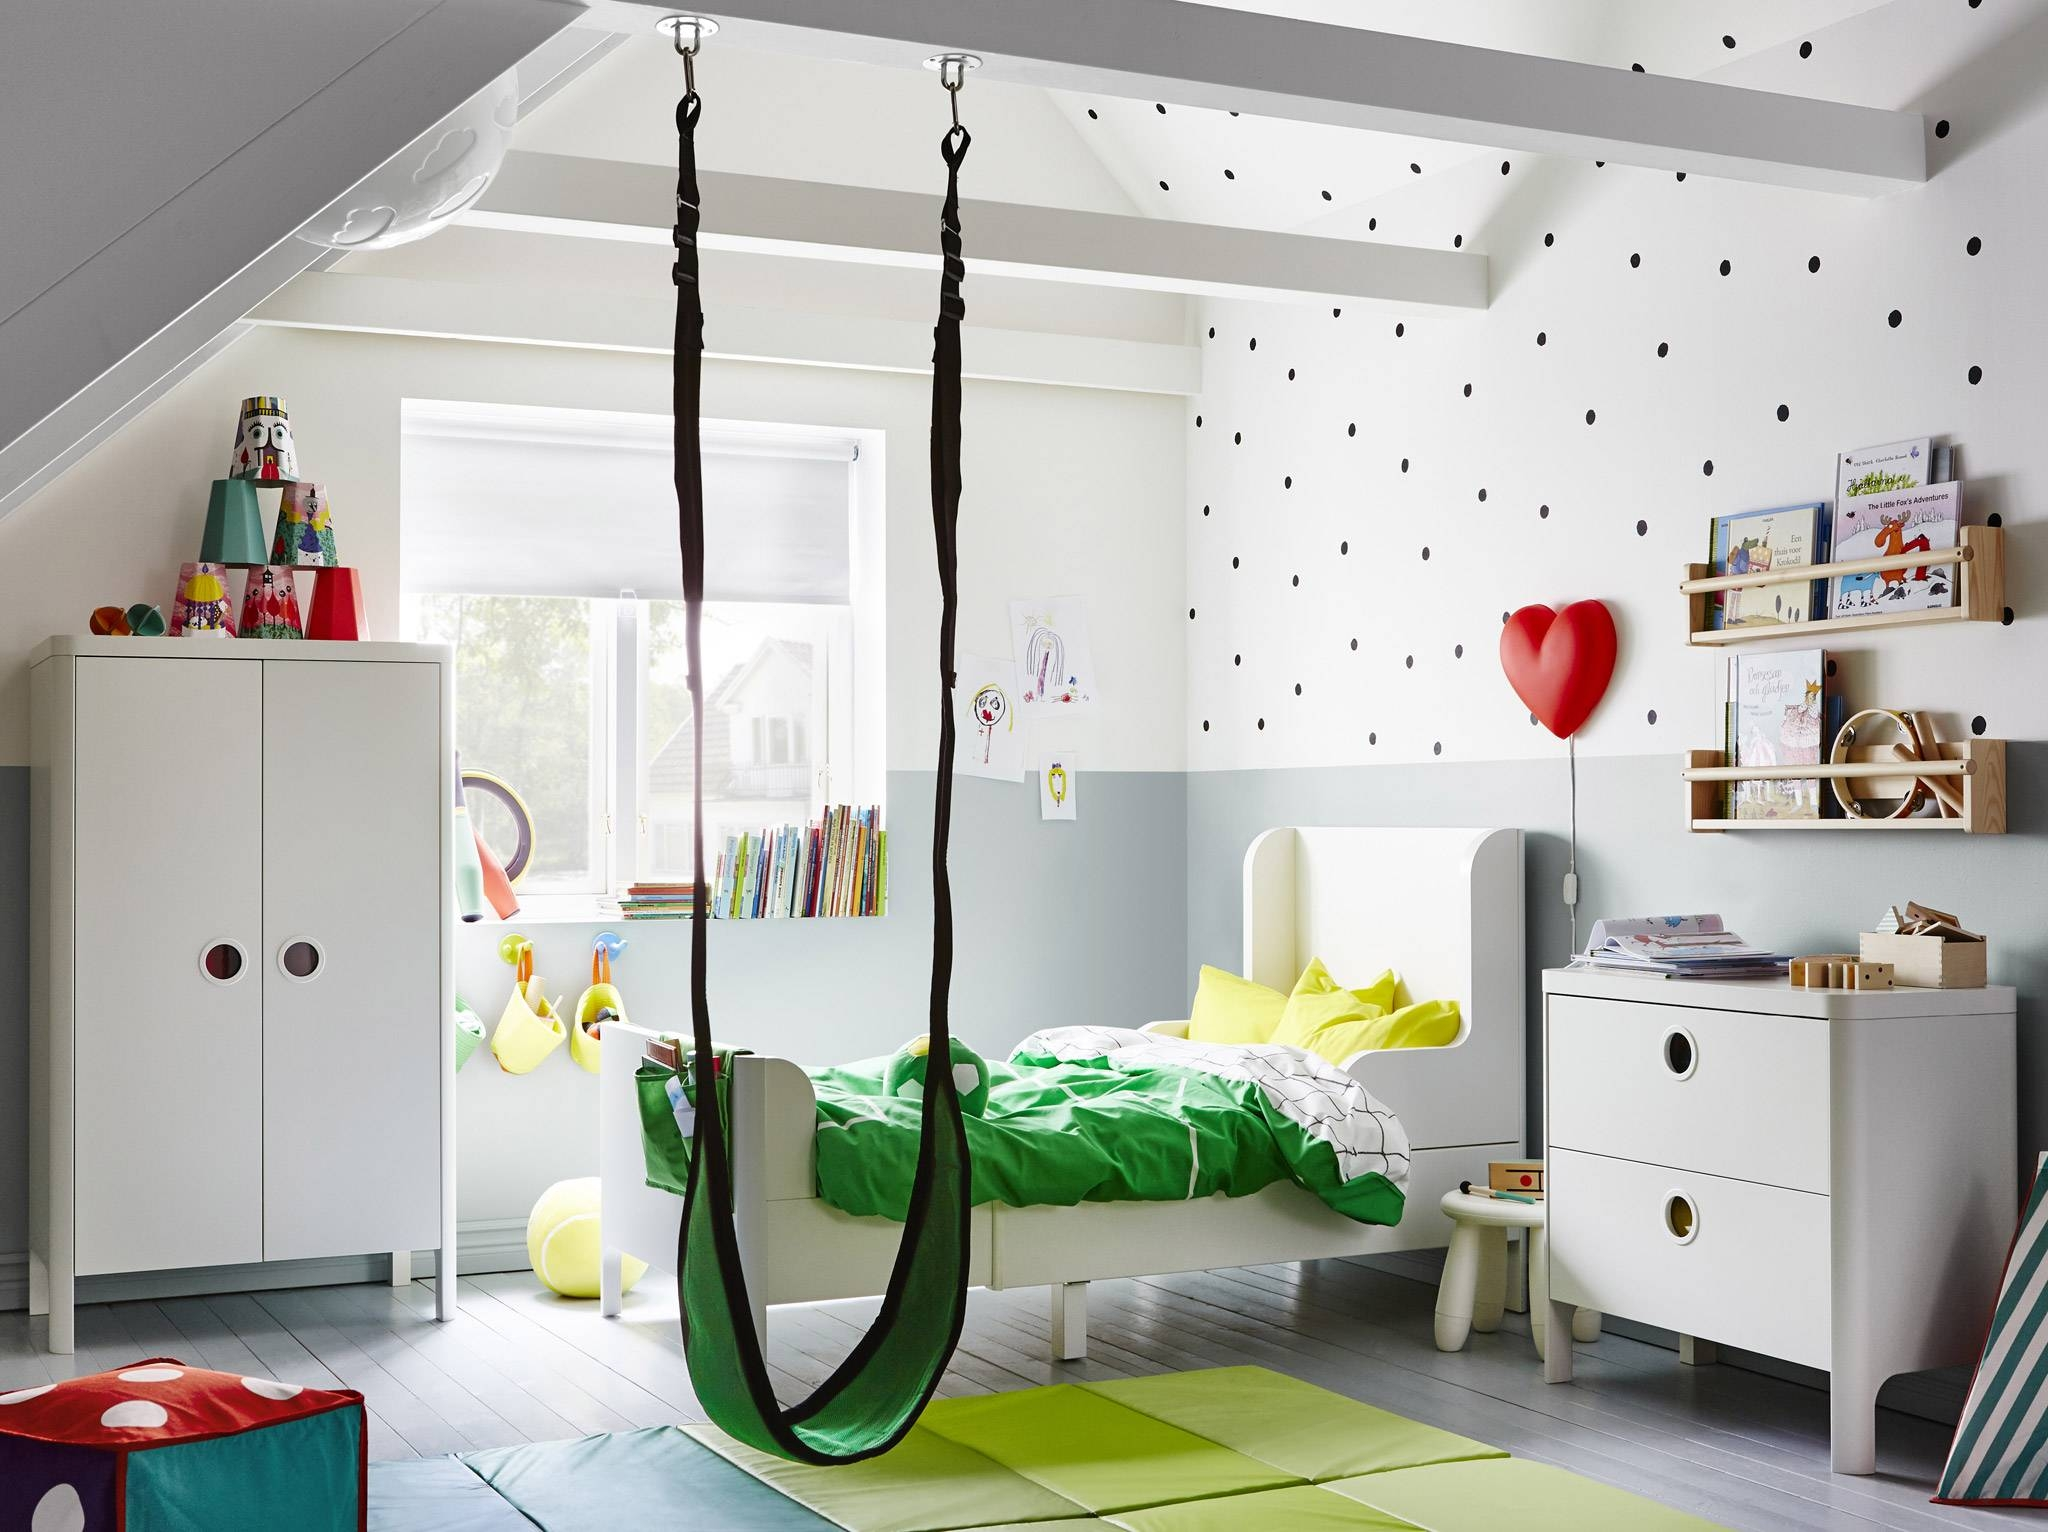 Children's Furniture & Ideas | Ikea intended for Childrens Bed With Wardrobes Underneath (Image 4 of 15)